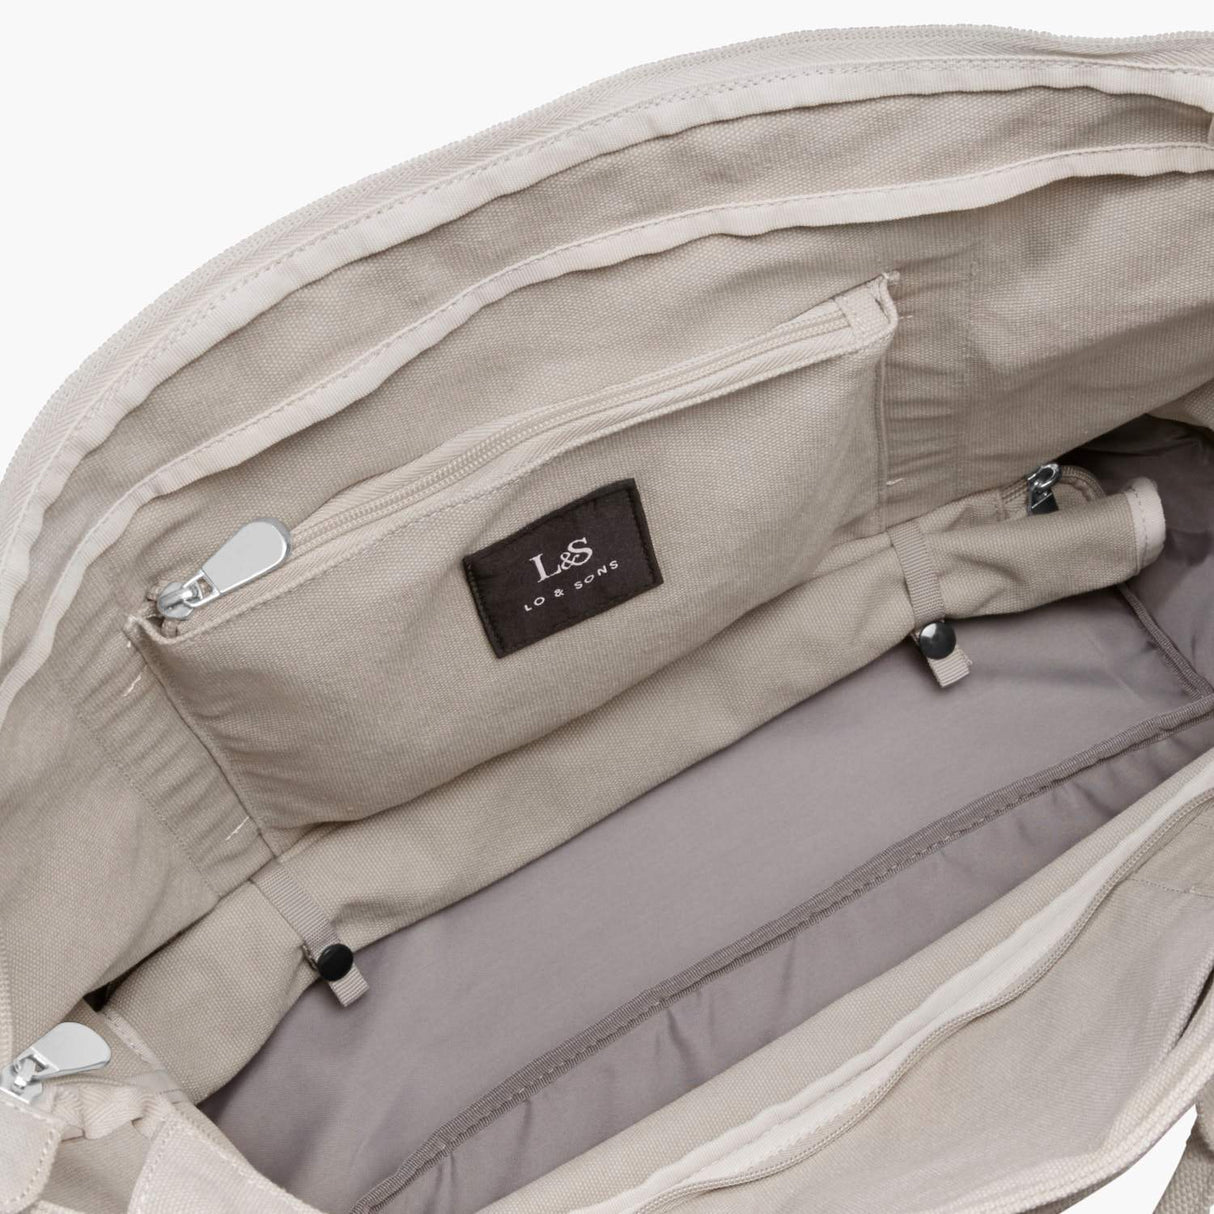 Interior Rolled Base - The Catalina Deluxe Tote - Washed Canvas - Dove Grey - Tote - Lo & Sons